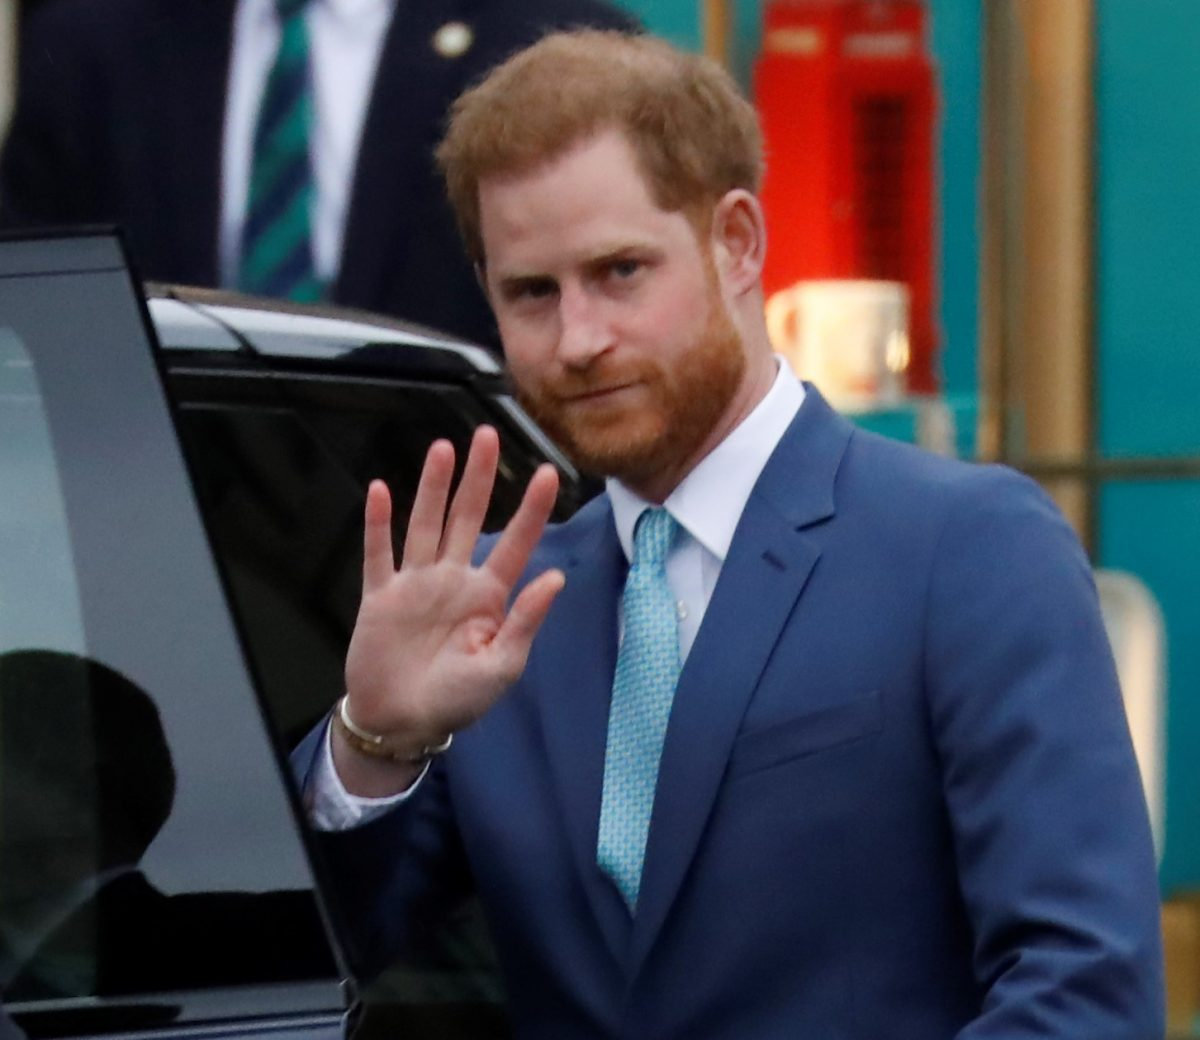 Prince Harry waving goodbye as he leaves the annual Commonwealth Service at Westminster Abbey